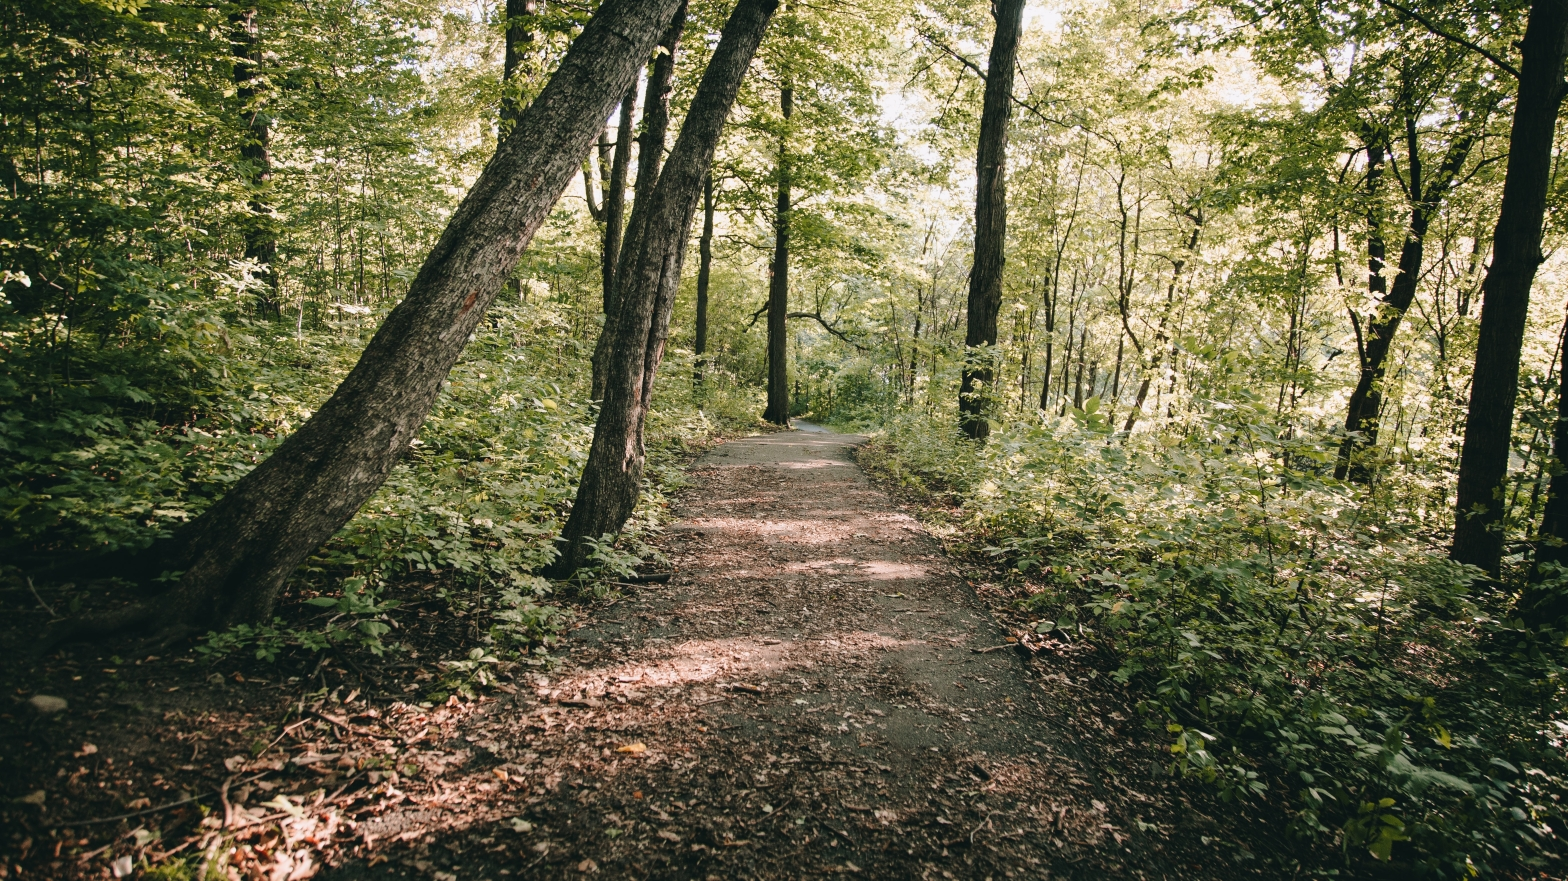 Image shows a woodland path